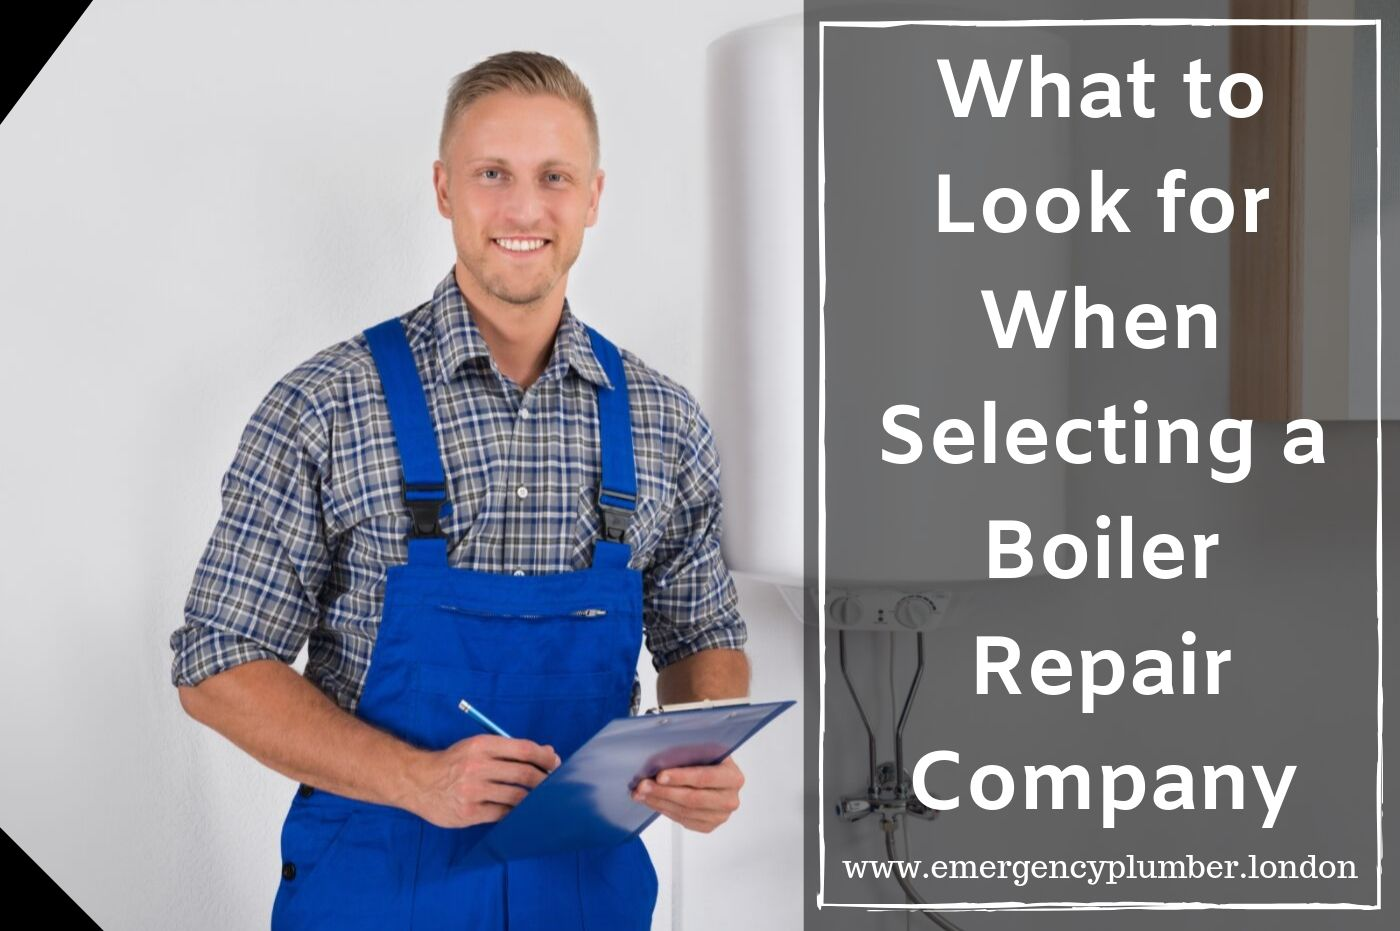 What to Look for When Selecting a Boiler Repair Company